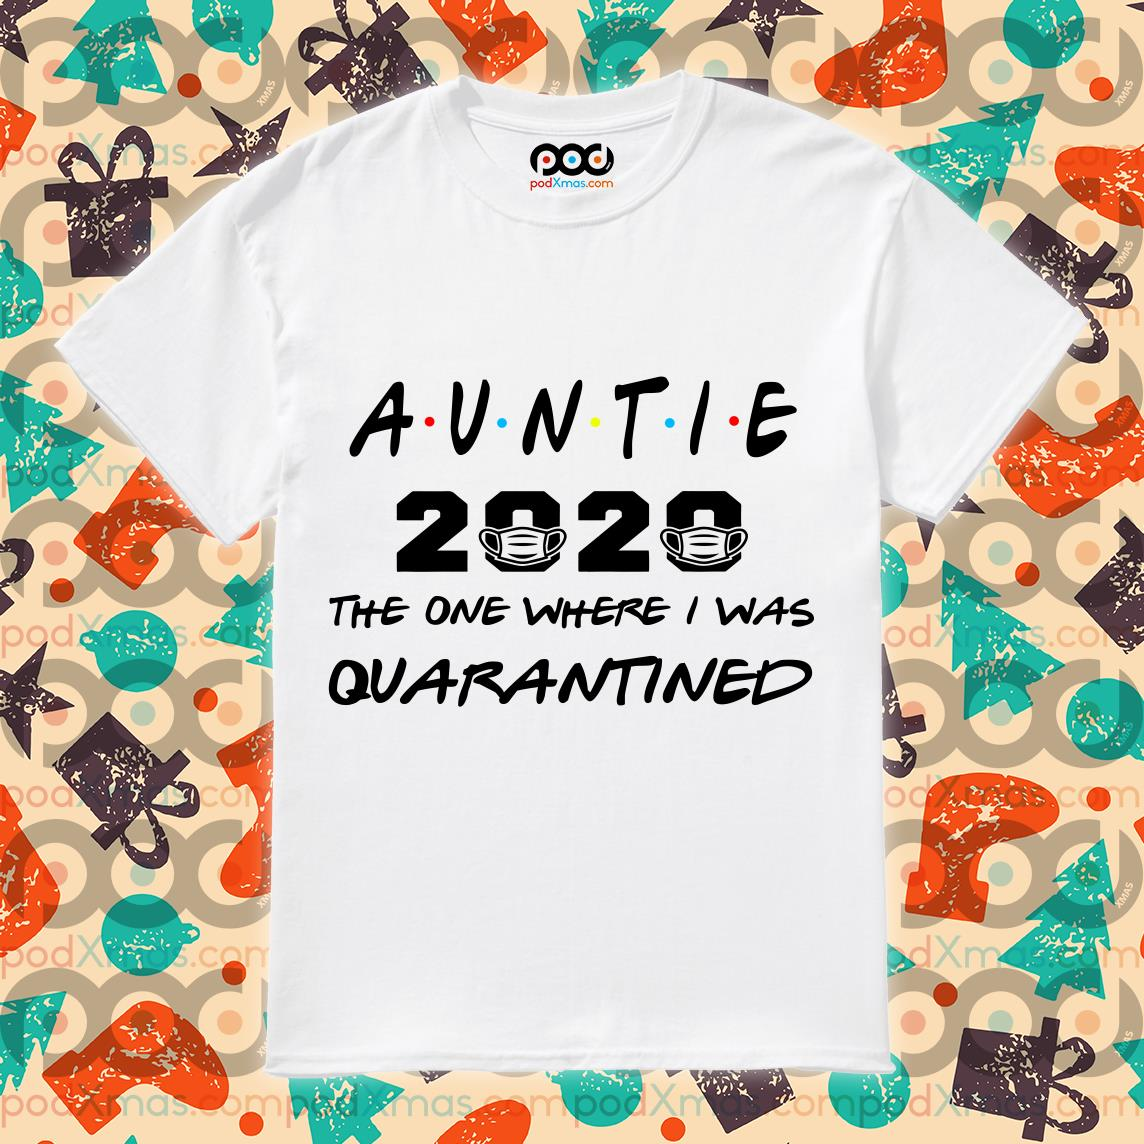 Auntie 2020 The one where I was Quarantined T-shirt